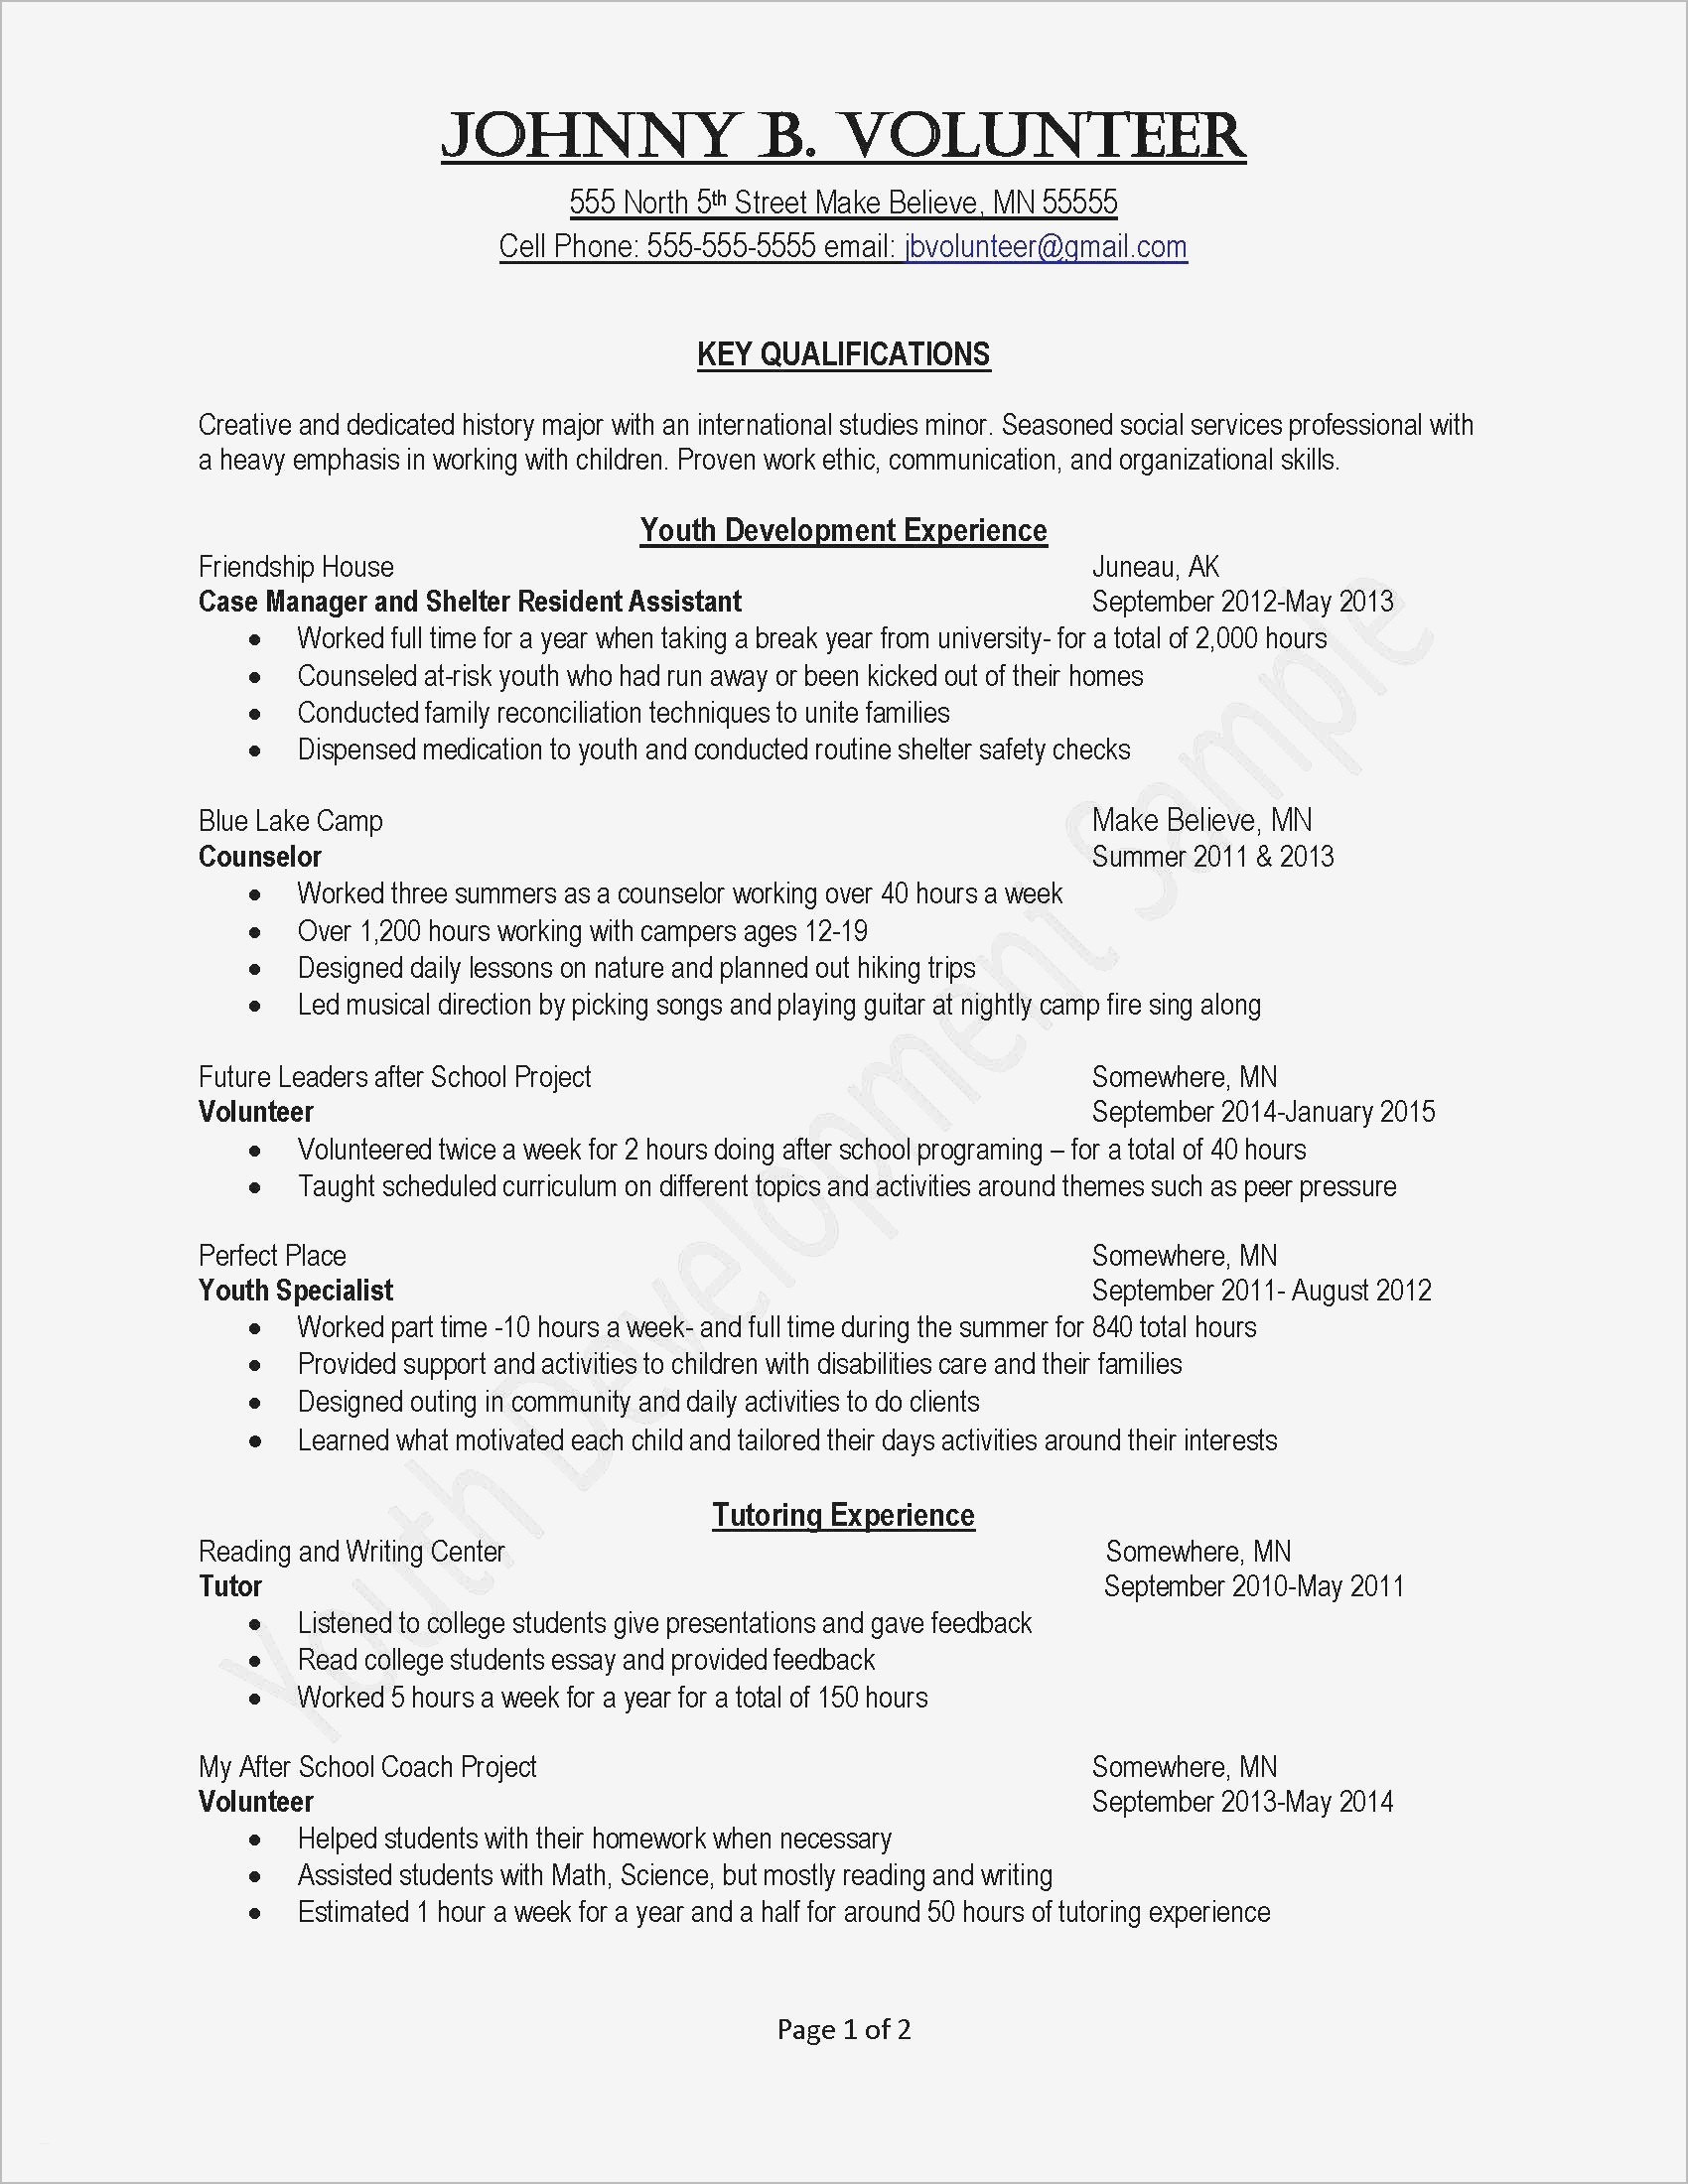 Bond Claim Letter Template - Leadership Resume Template Best Job Fer Letter Template Us Copy